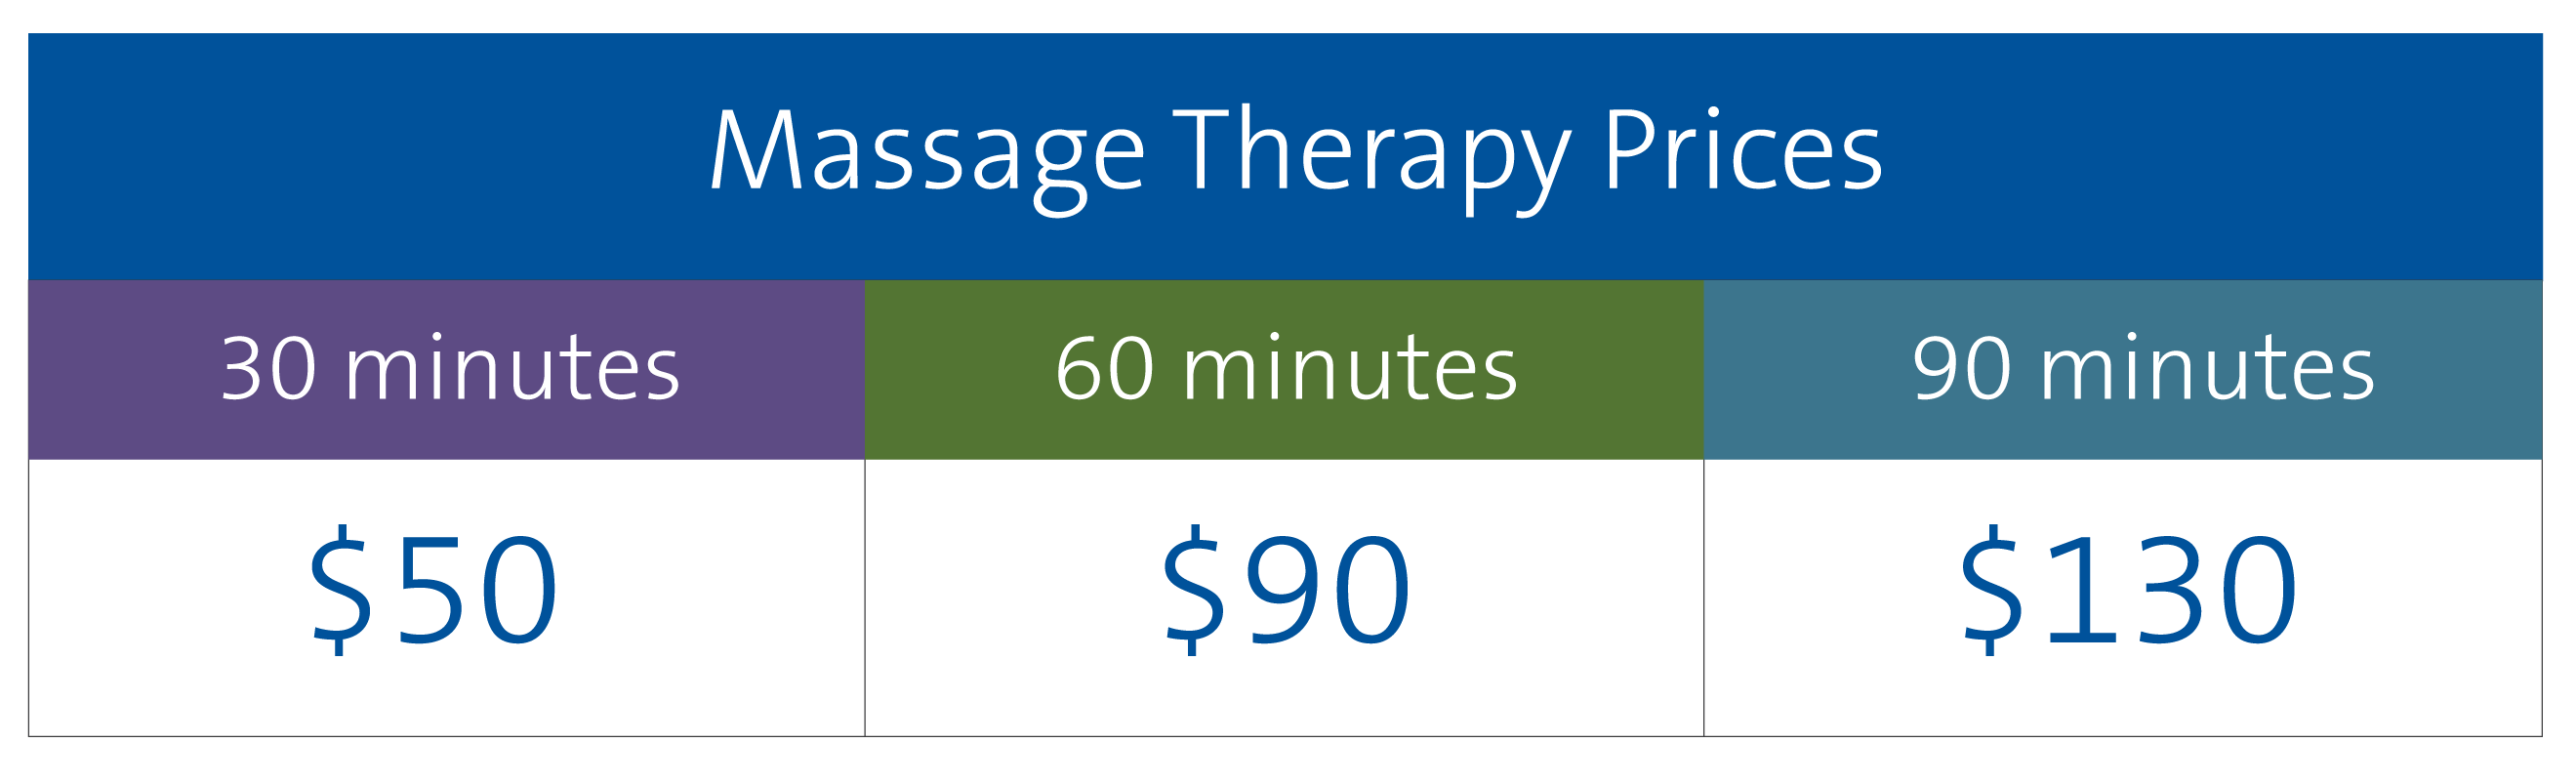 Massage therapy pricing at Duke Integrative Medicine